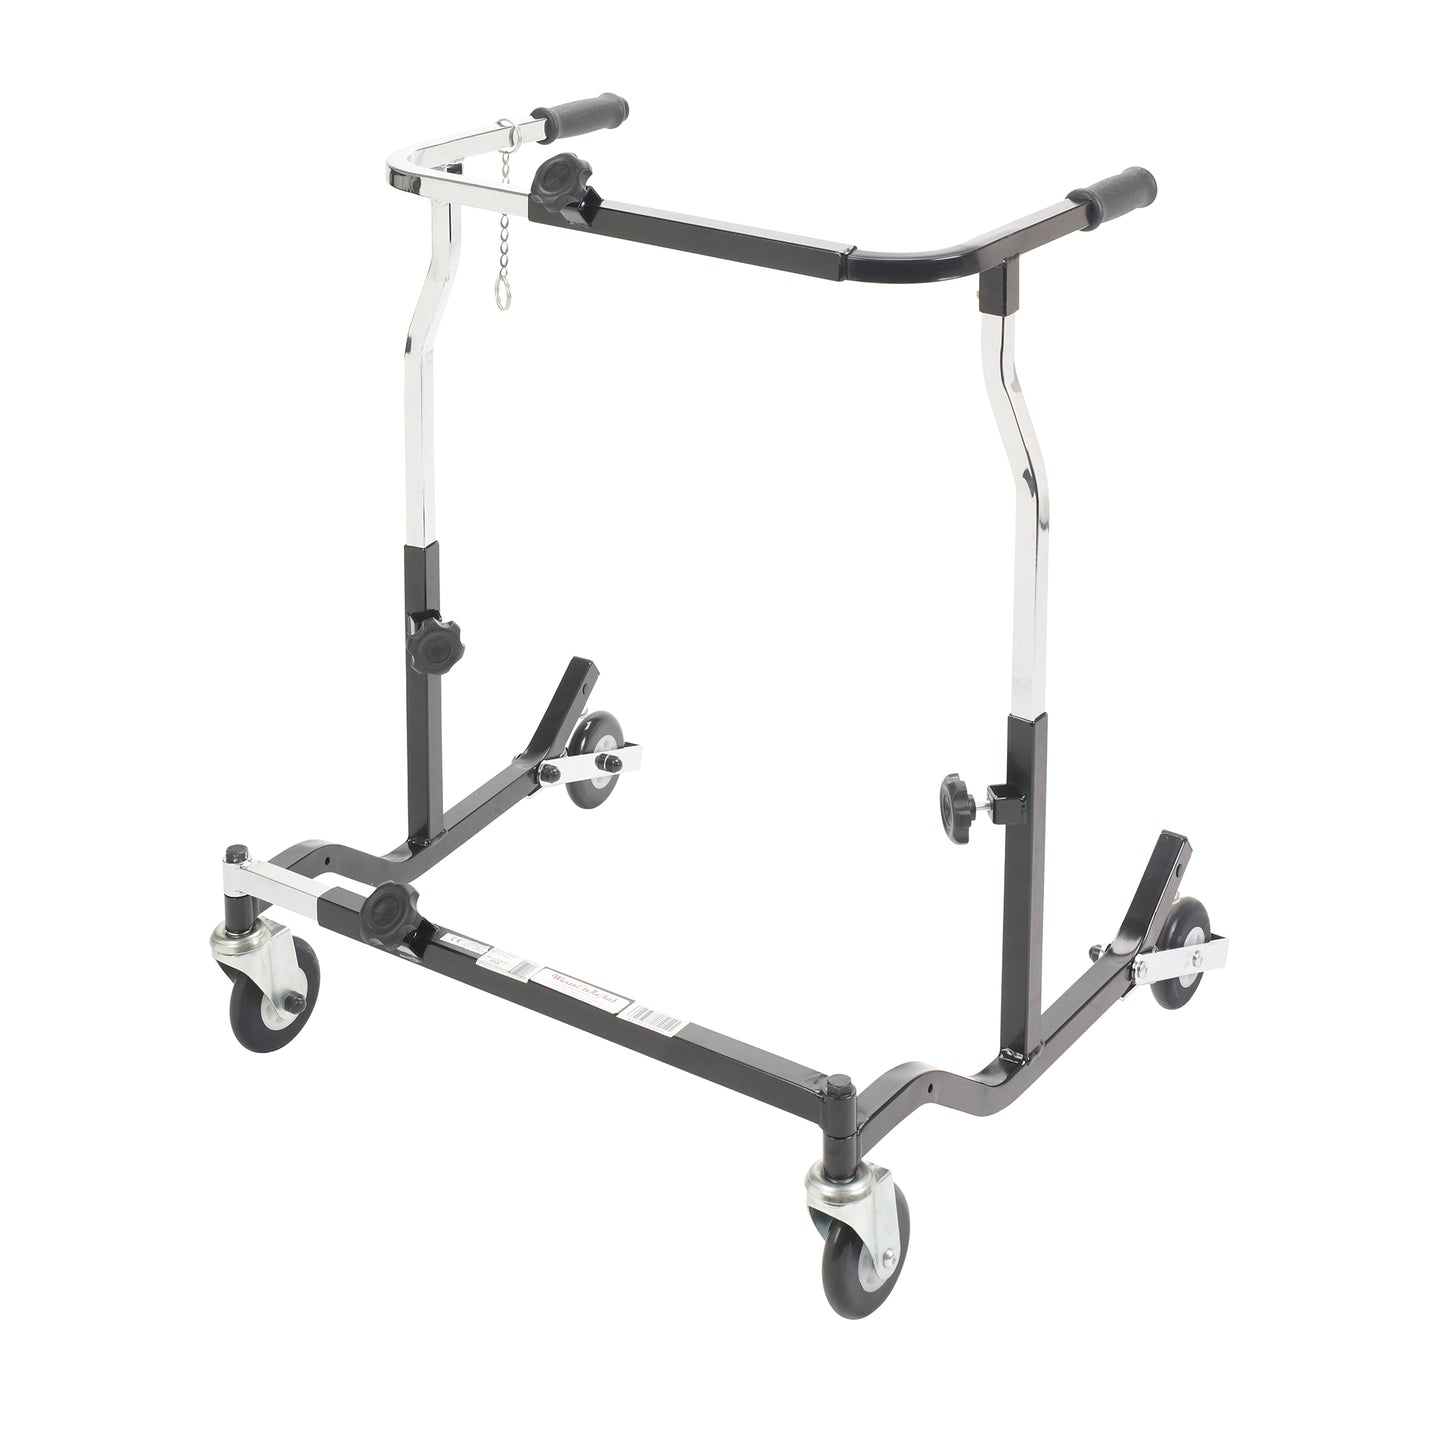 Drive Bariatric Heavy Duty Anterior Safety Roller- 500lbs Weight Capacity